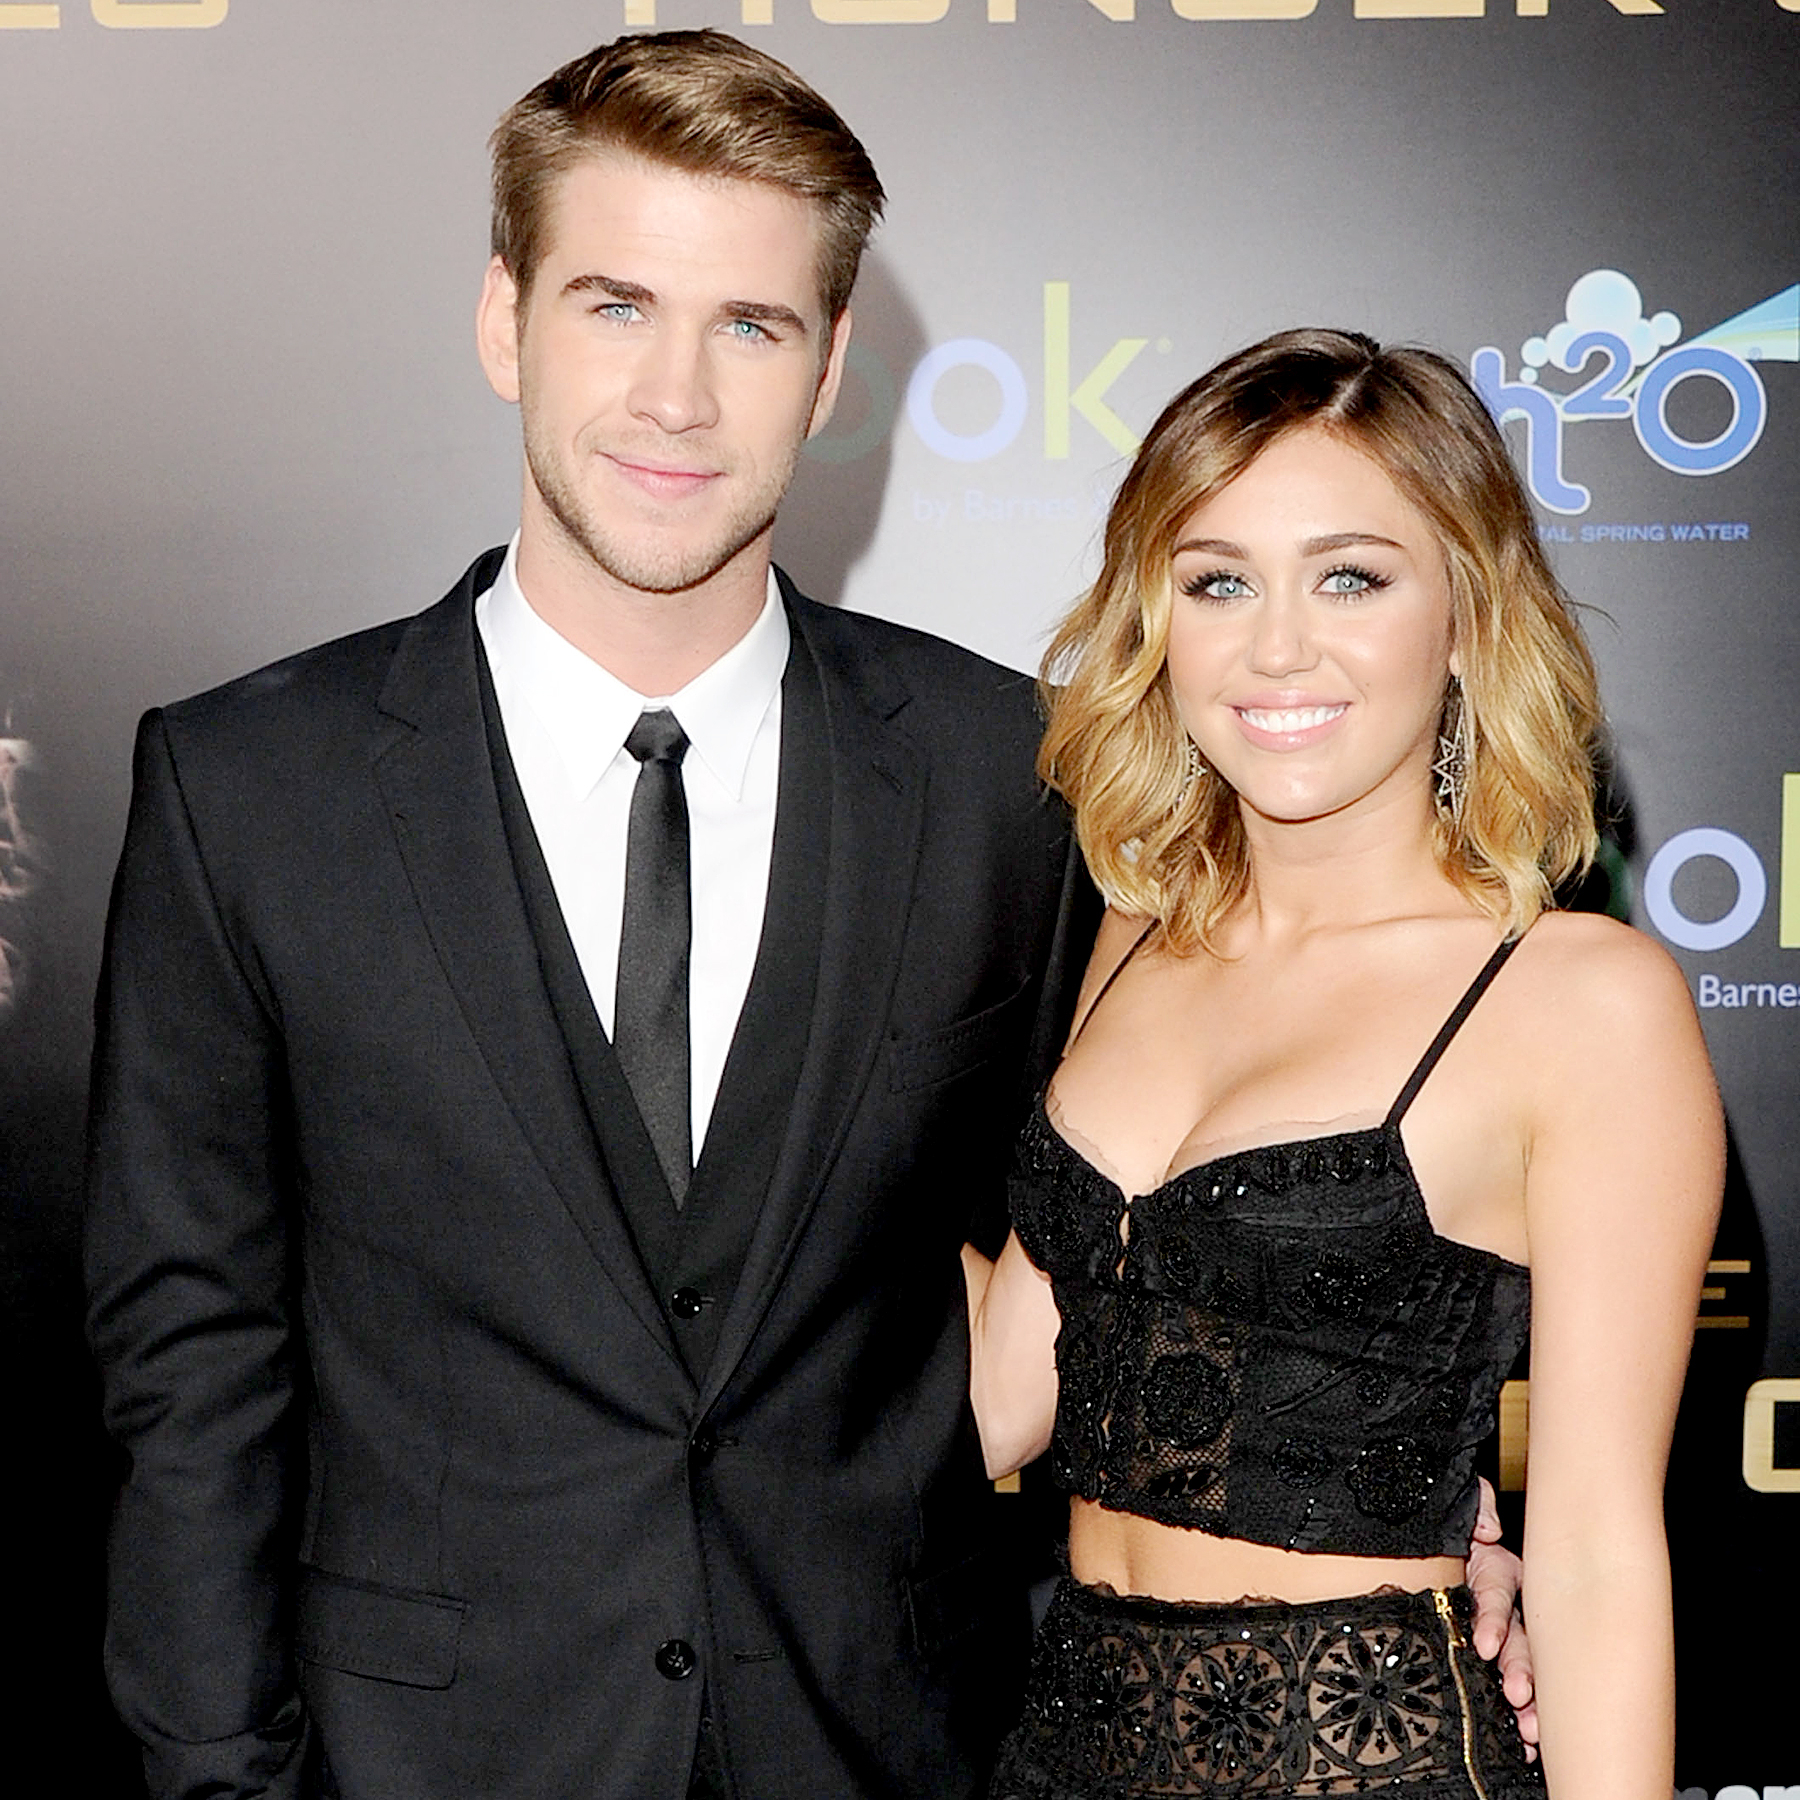 Liam Hemsworth and Miley Cyrus arrive at the premiere of Lionsgate's 'The Hunger Games' in 2012.